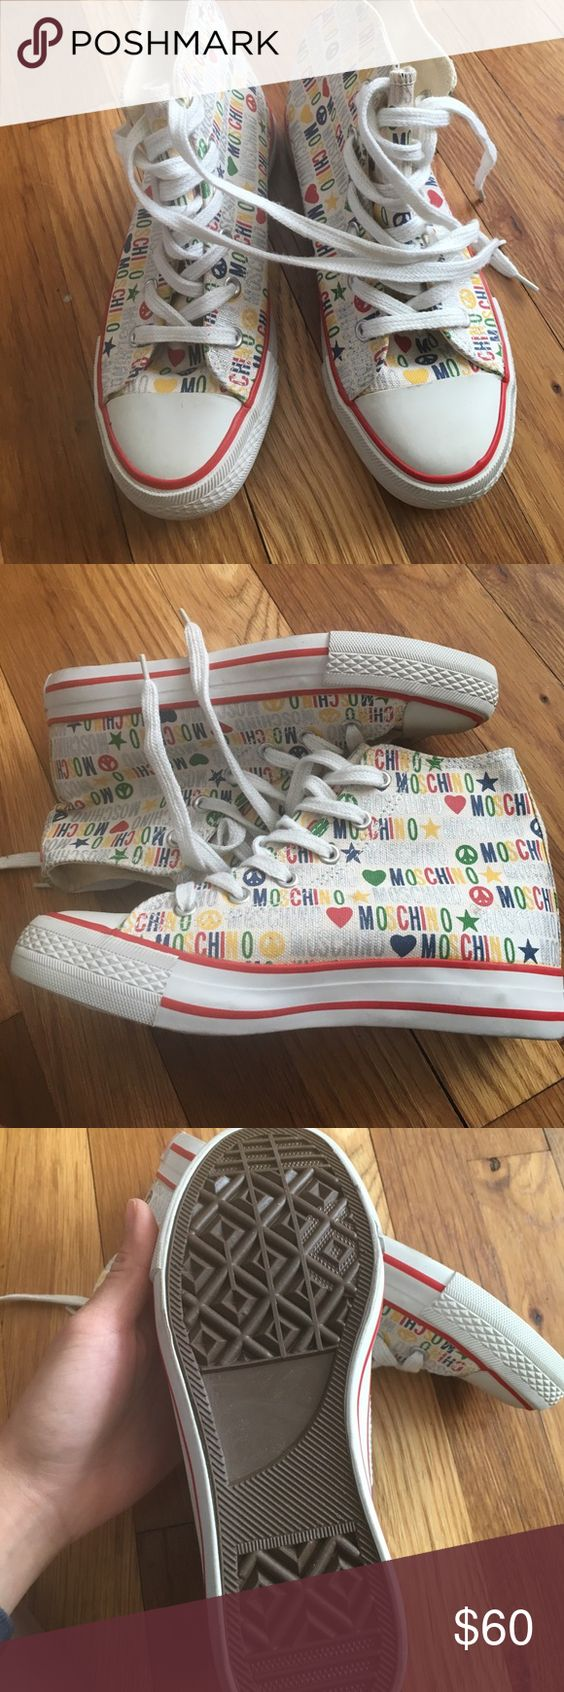 Moschino Rainbow High Tops Size 34 (fits a 5/5.5 women's) brand new, no box Moschino Shoes Sneakers